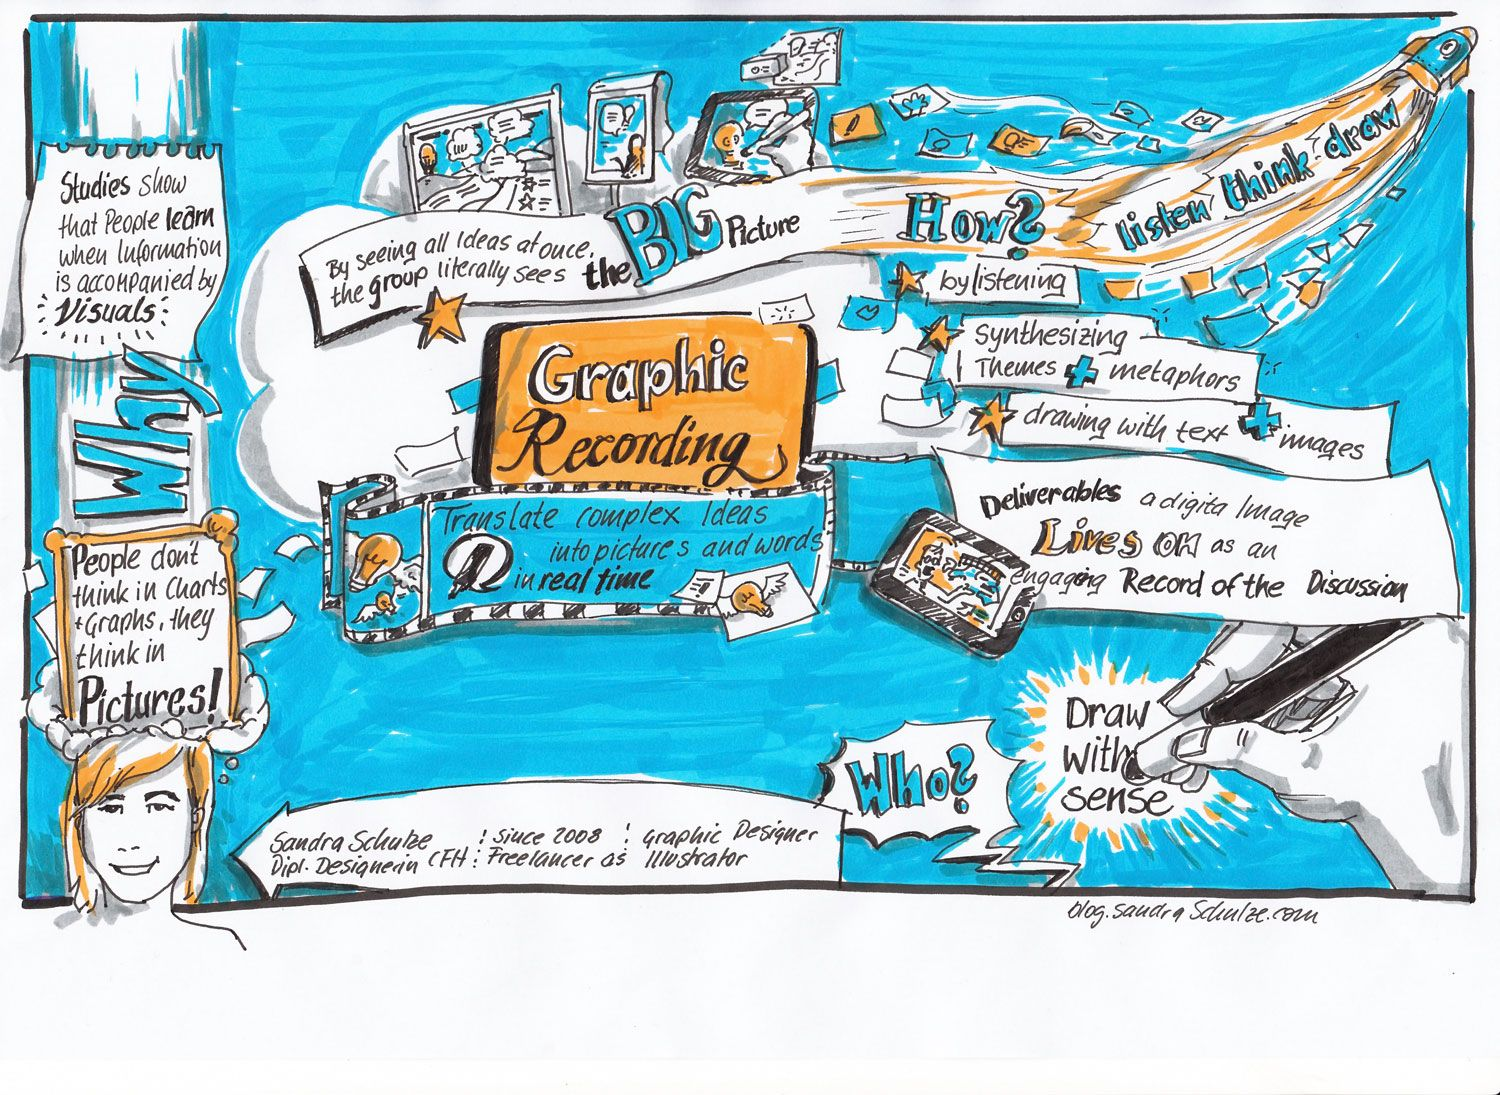 Why Graphic Recording?